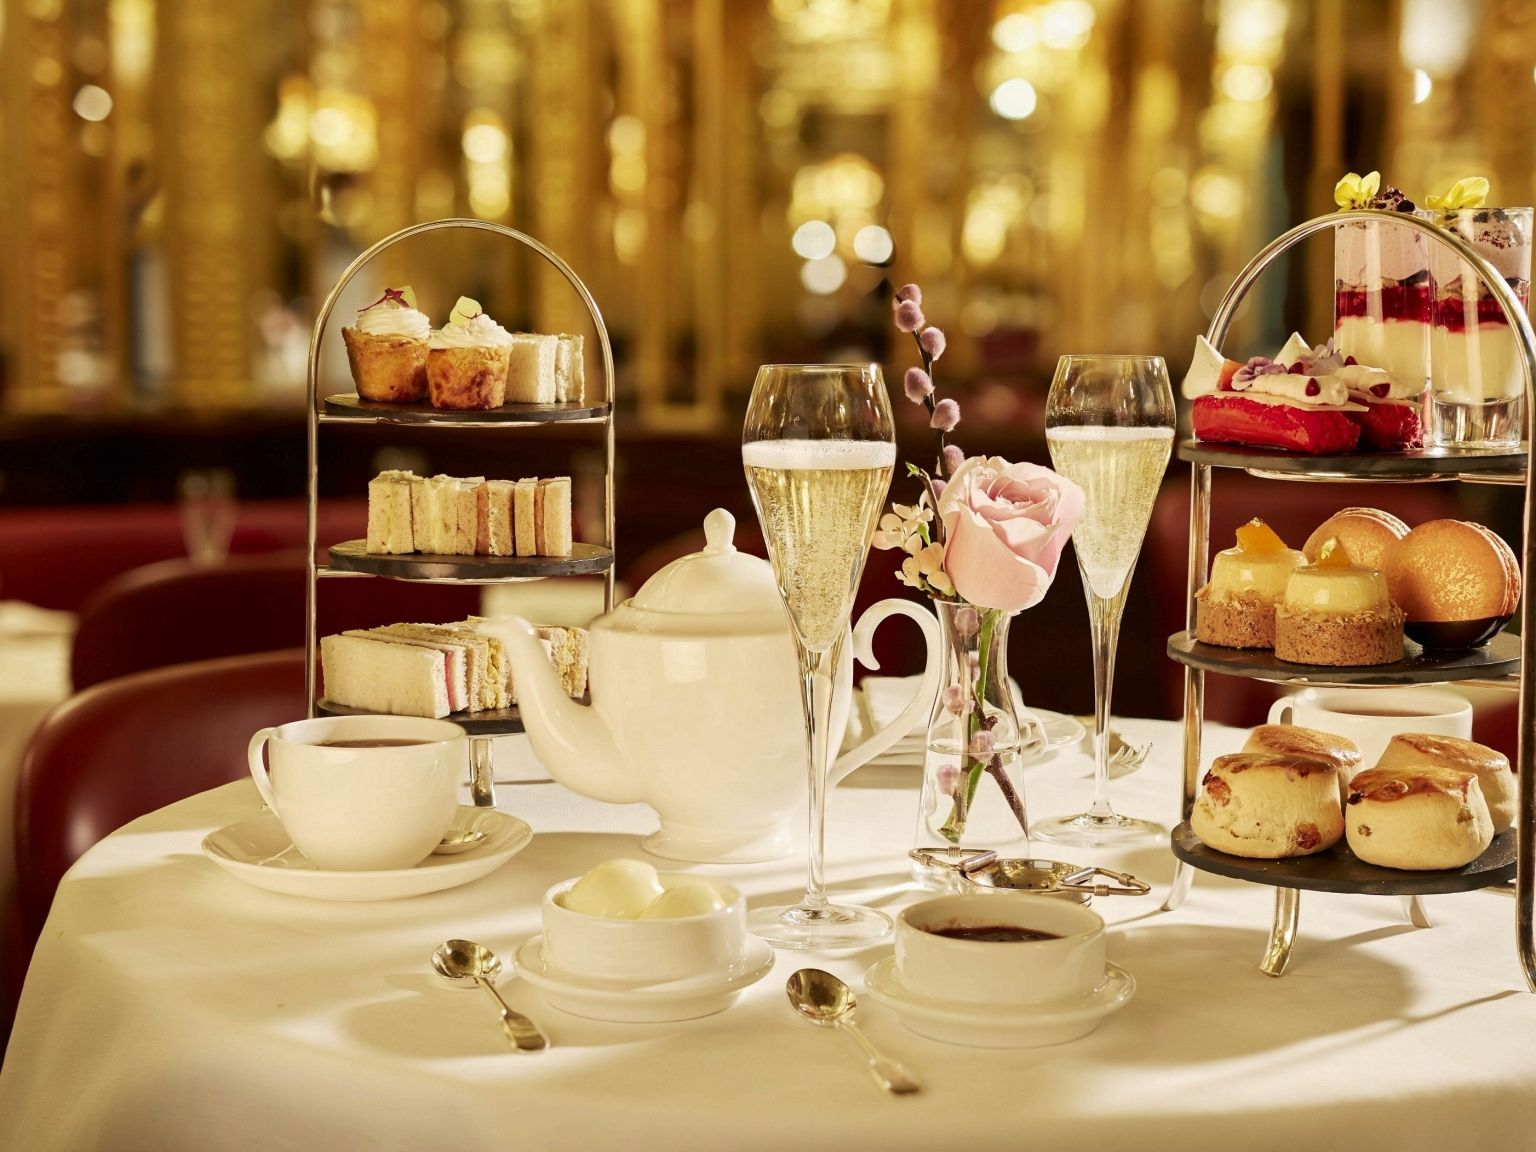 luxury afternoon tea hotel cafe royal london